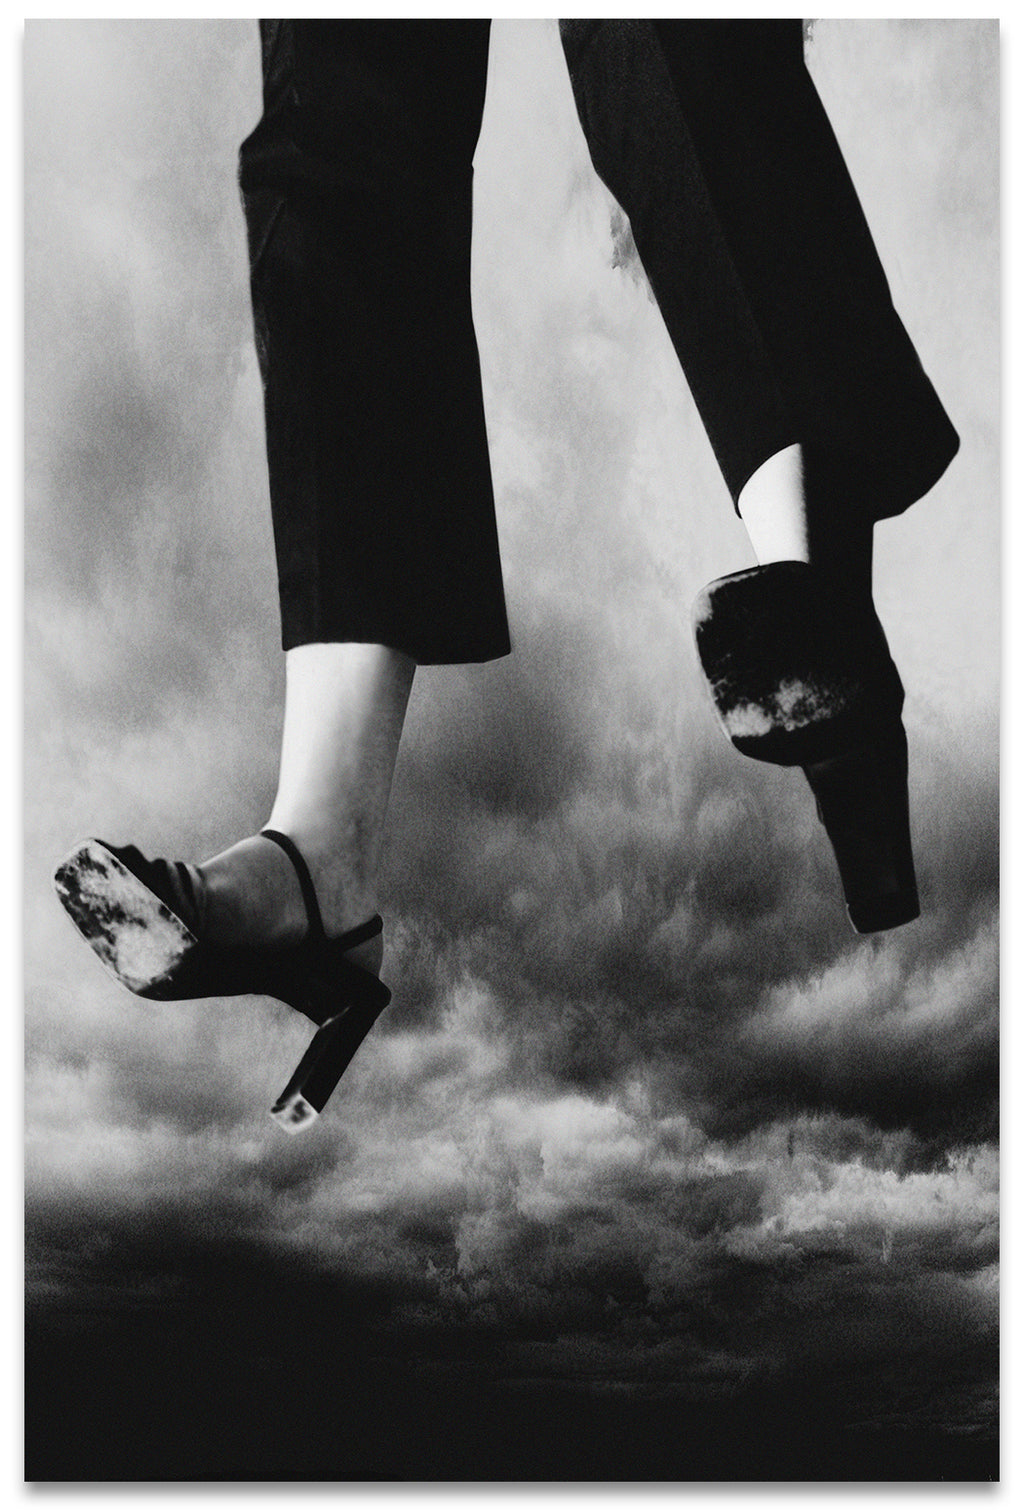 Black & White Portrait of a Woman's Legs Flying Through Stormy Skies- Metal Print-Aluminum Print